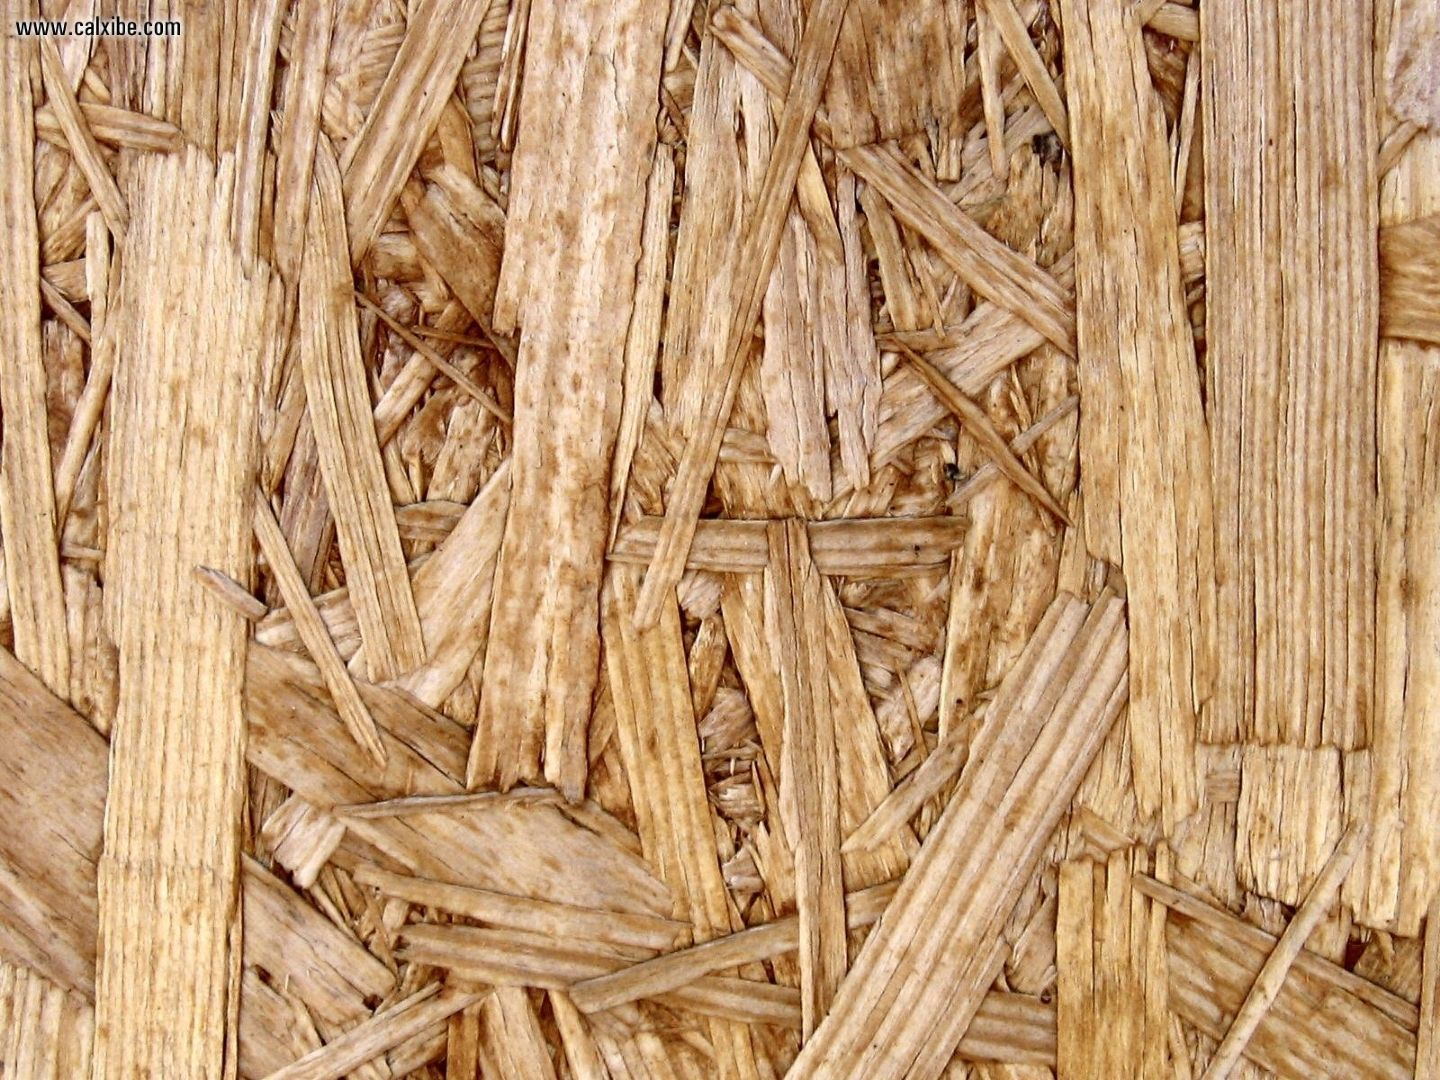 woodchip wallpaper Wallpaper and Screensaver 1440x1080